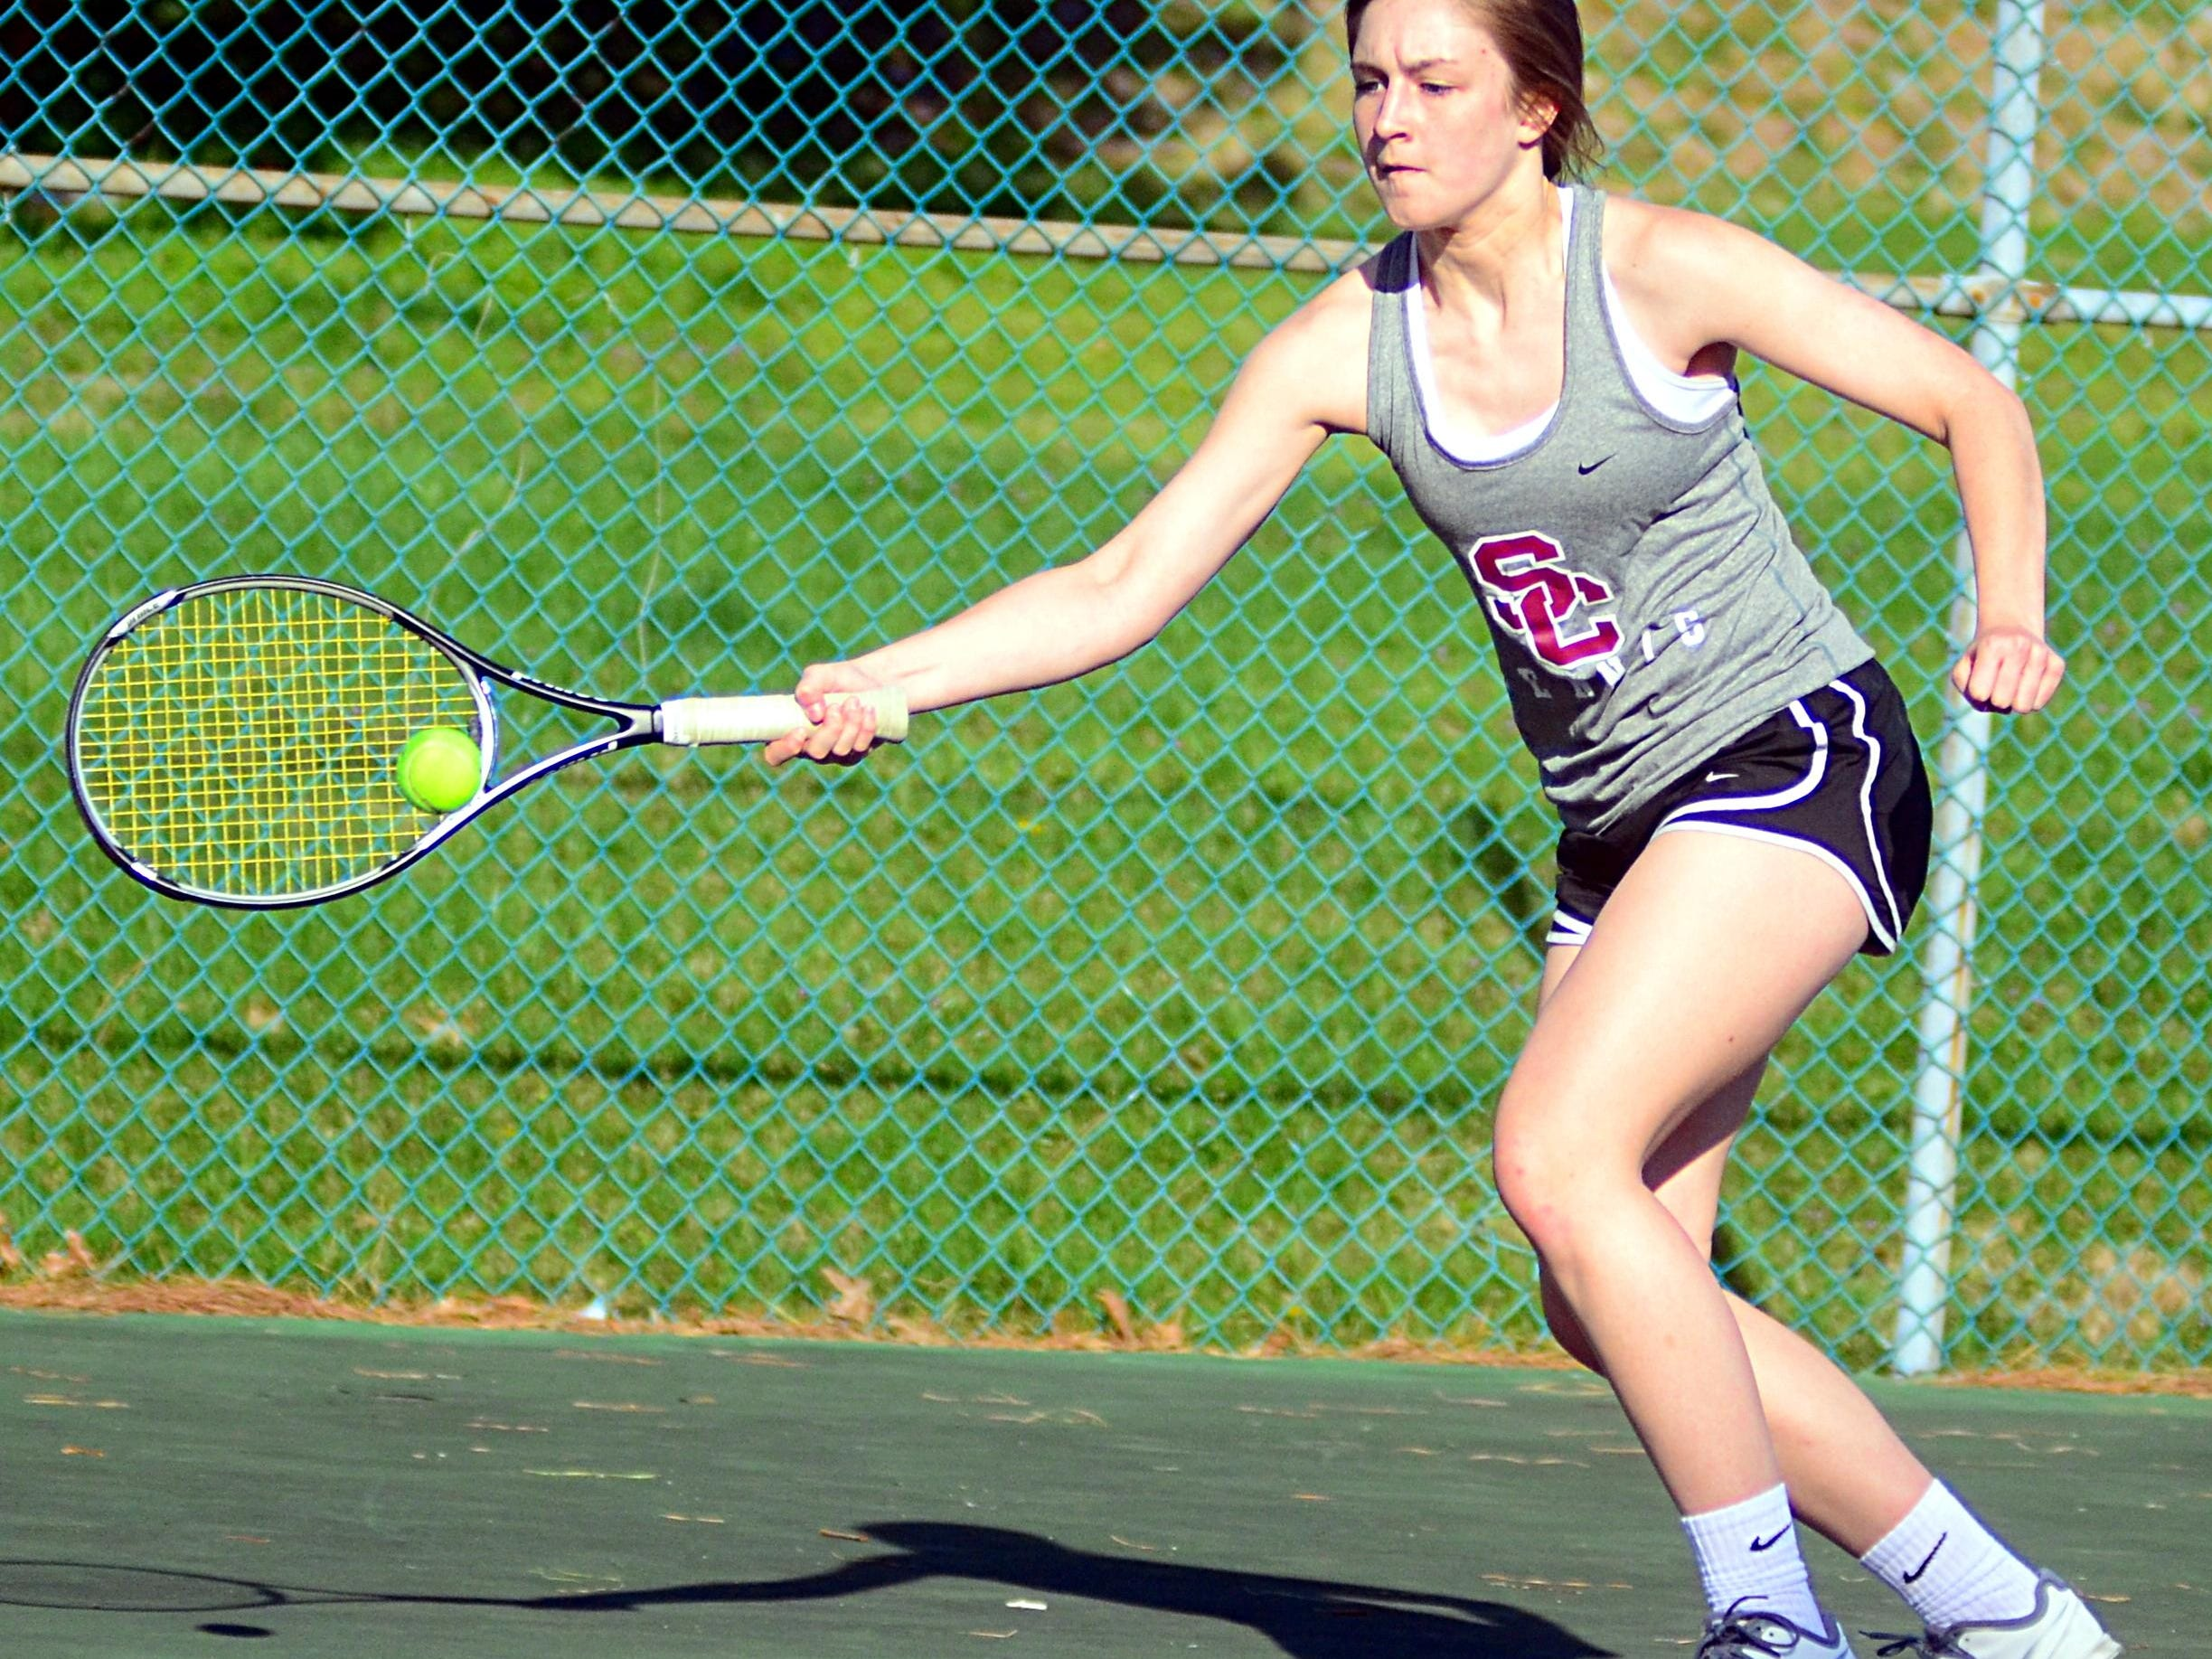 Station Camp High sophomore Jessica Hopson hits a forehand return during her match against Merrol Hyde Magnet. Hopson won in singles and doubles as the Lady Bison collected a 7-2 victory.